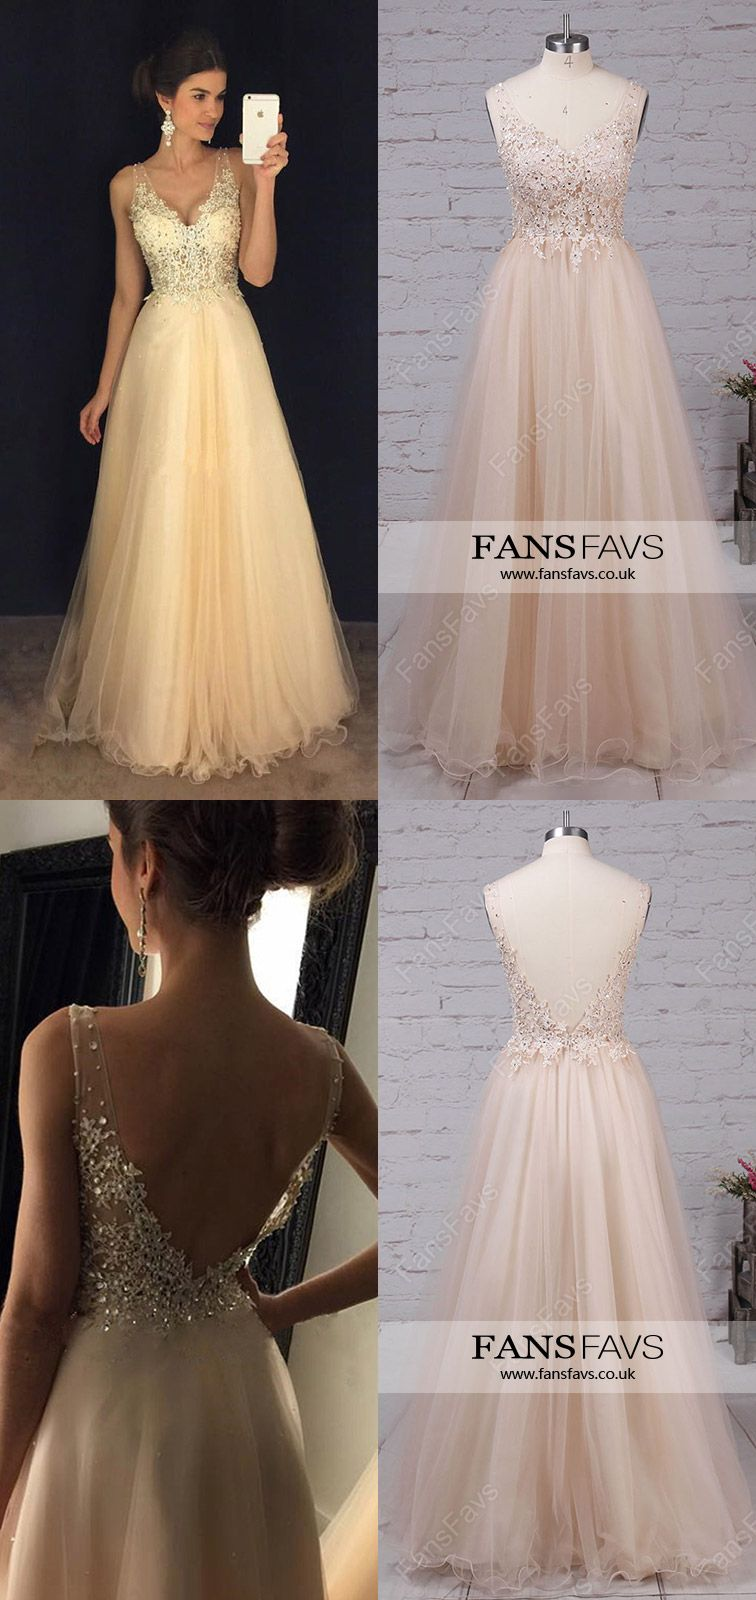 Champagne prom dresseslong prom dresses for girlssexy prom dresses